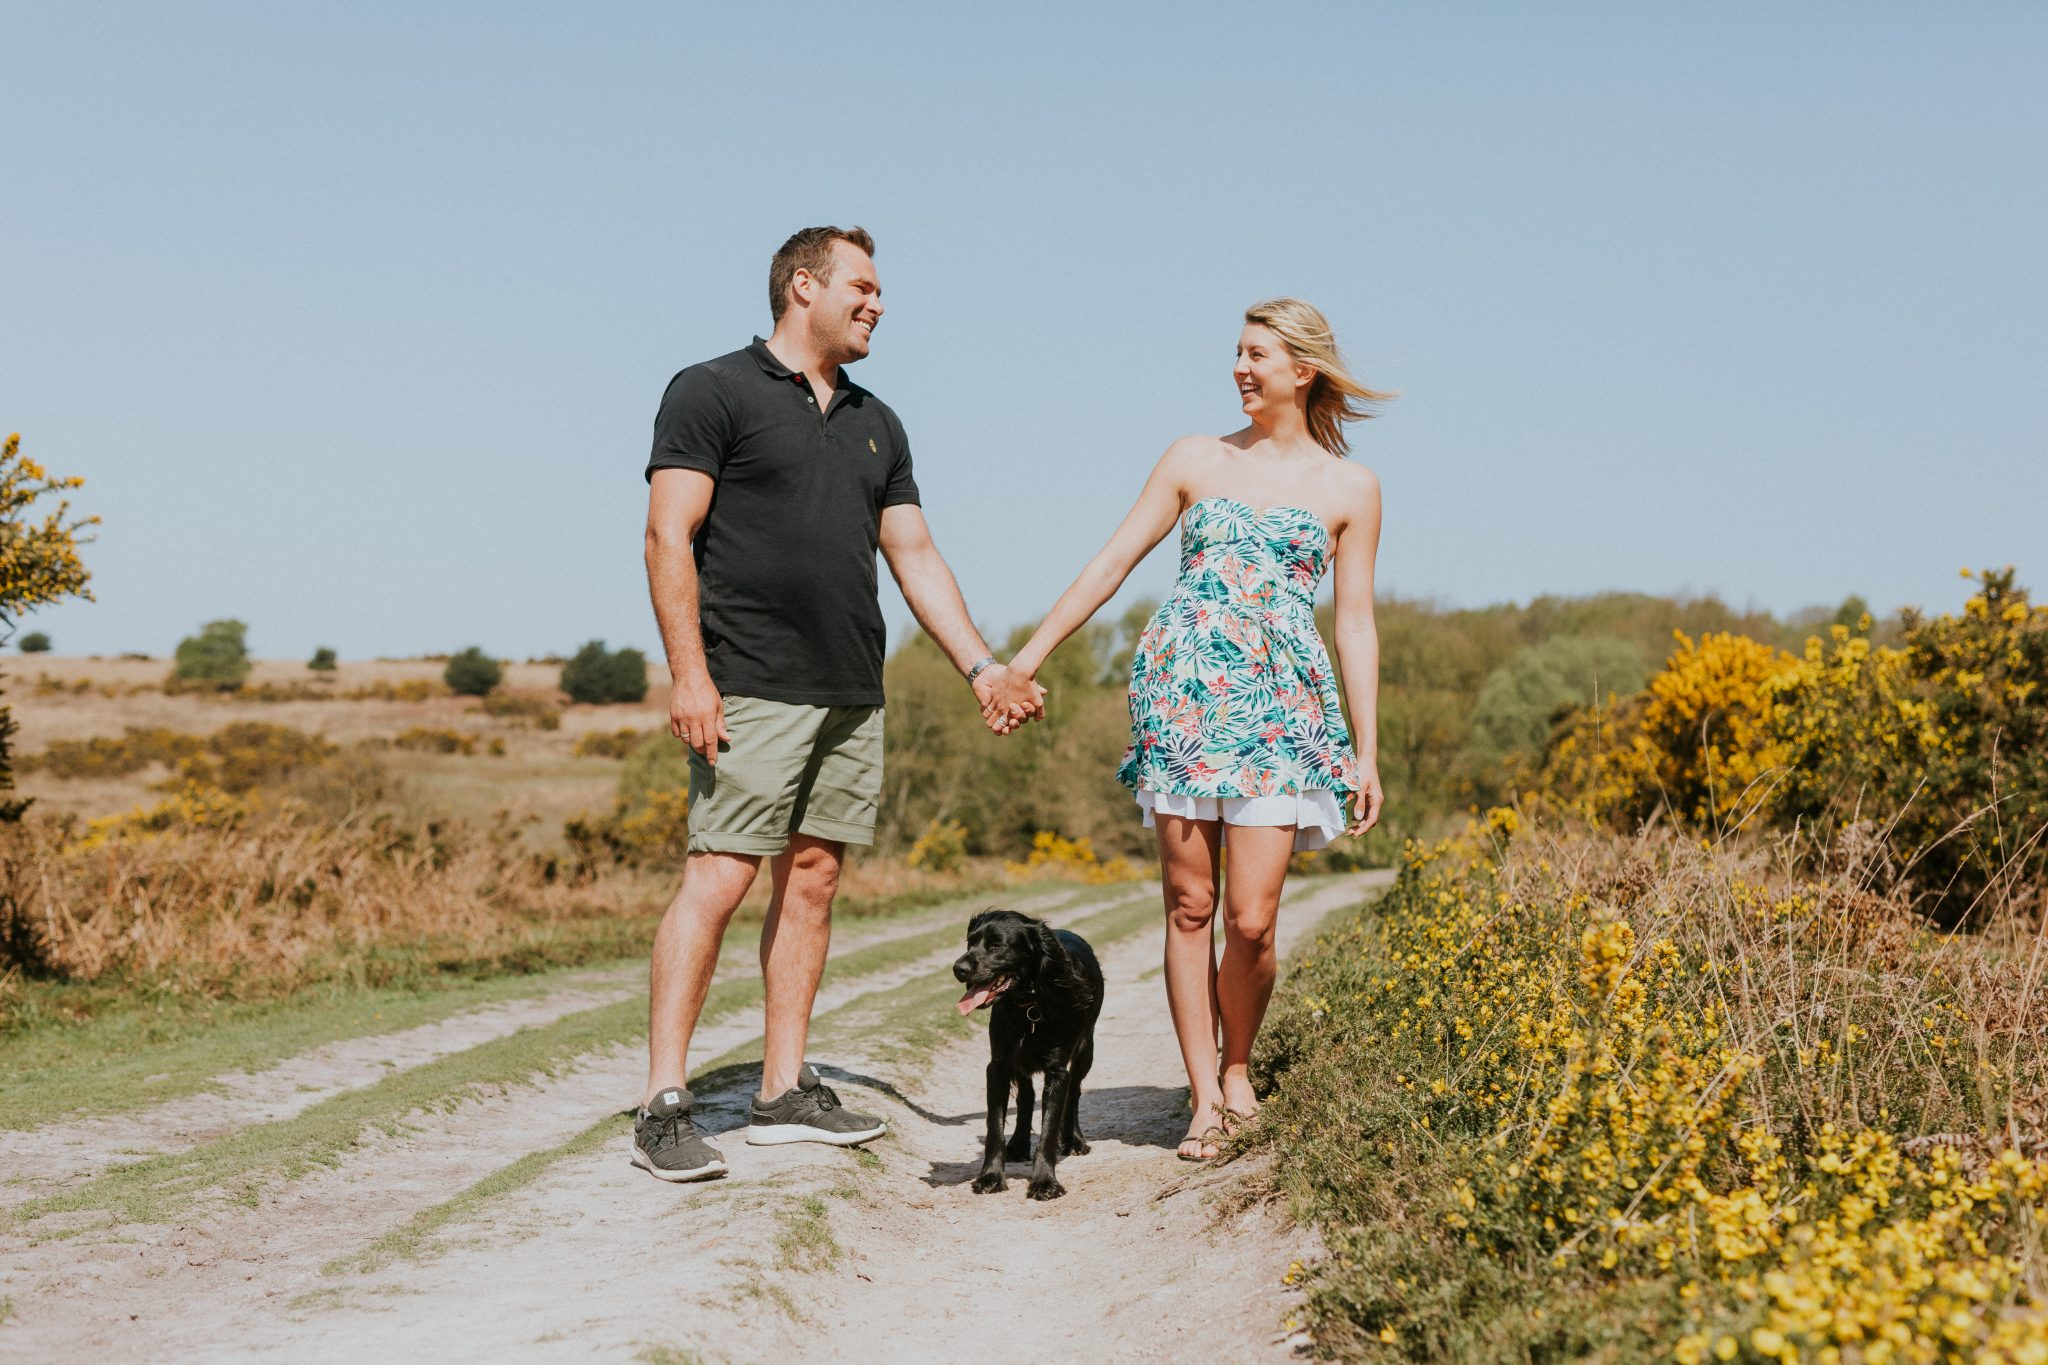 S Butler Photography - Engagement Photographer Sussex - Megan and Mitch-1229